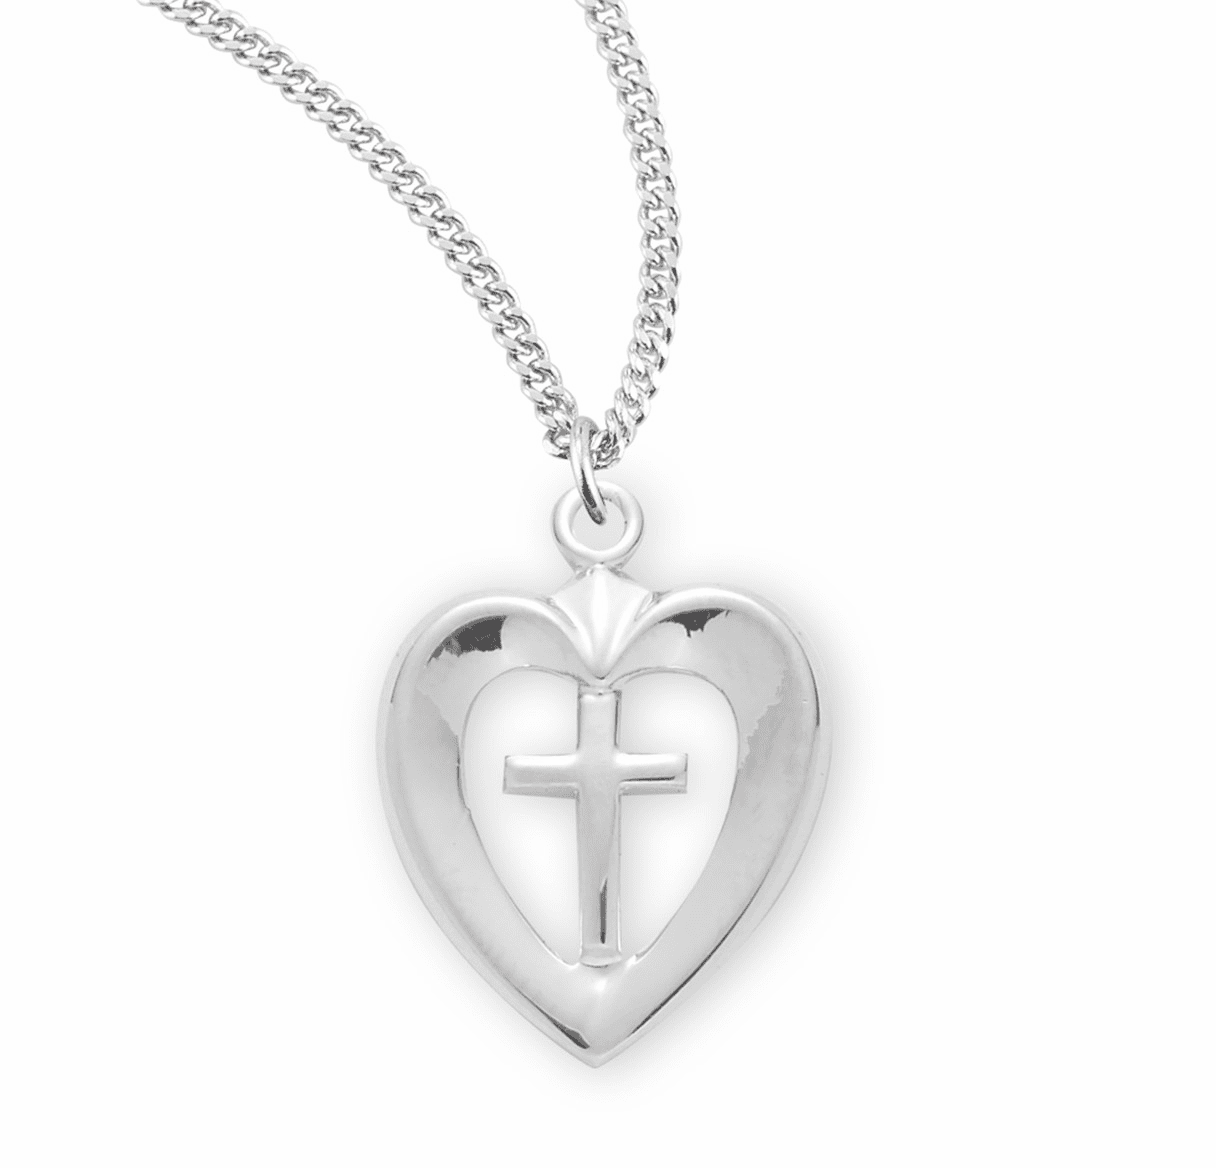 HMH Religious Sterling Silver Open Heart w/Cross Center Necklace